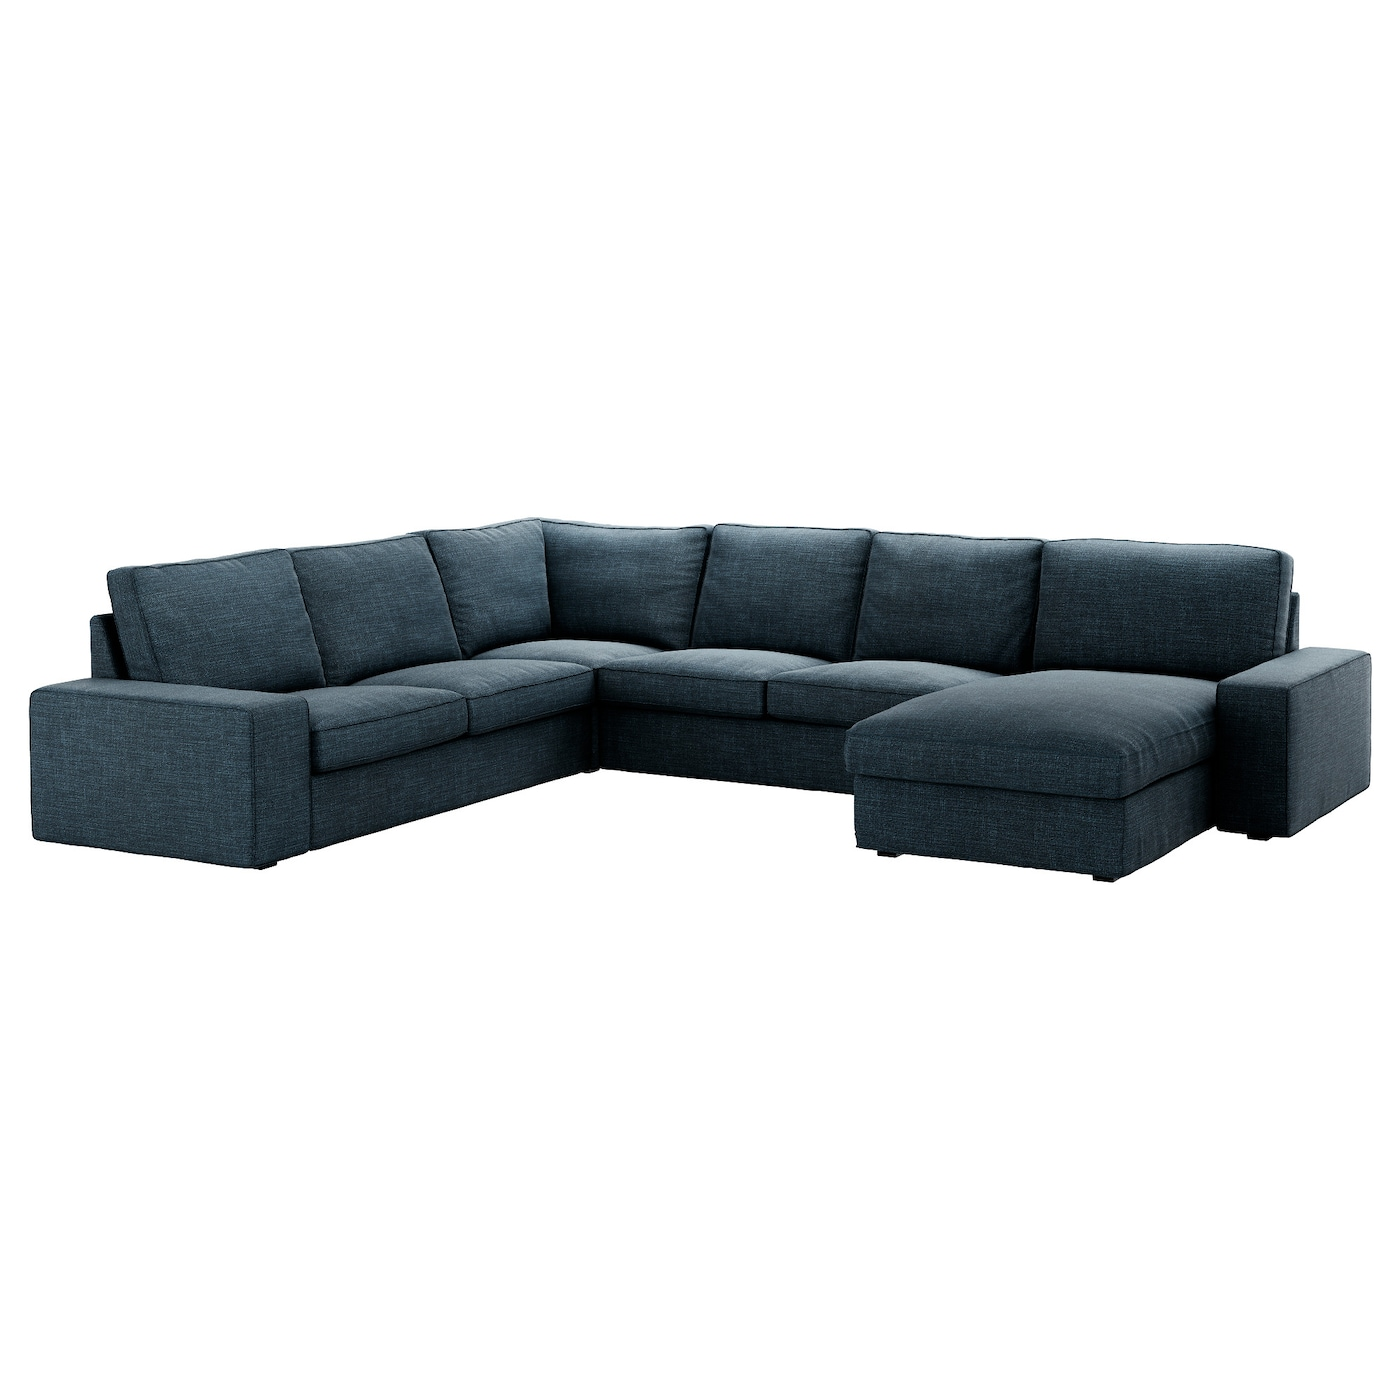 Kivik corner sofa 5 seat with chaise longue hillared dark for Blue chaise longue